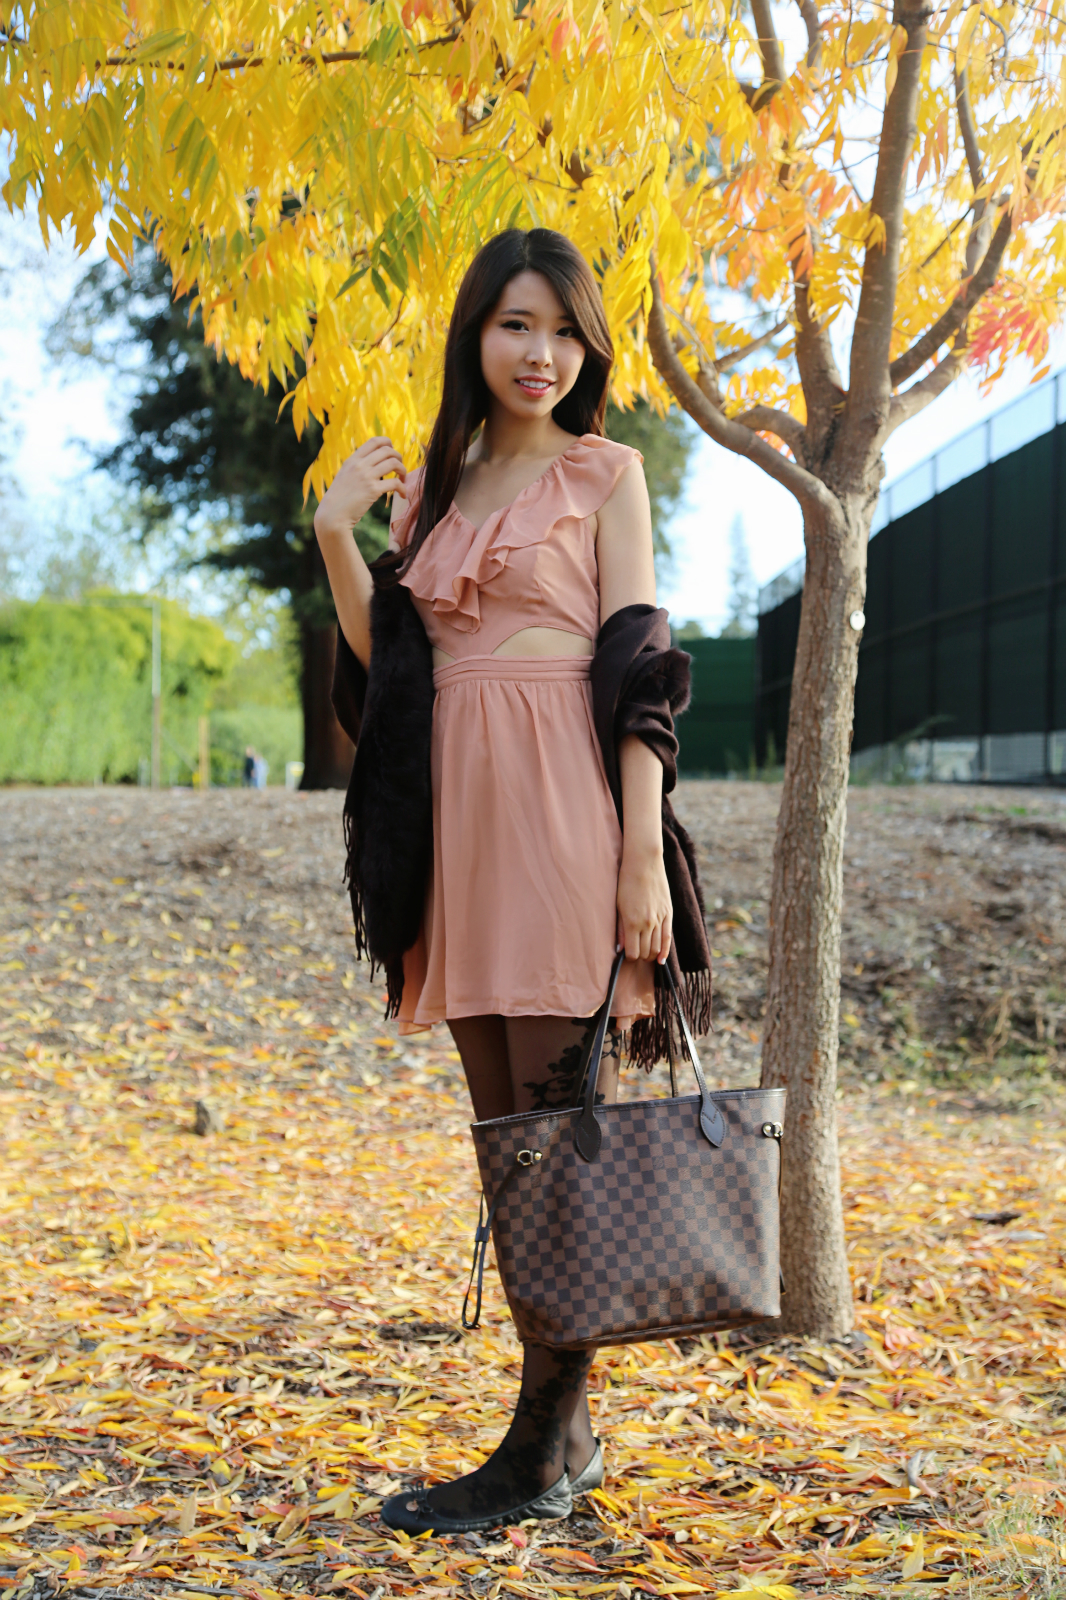 ally gong, autumn, mink, stole, shawl, wrap, wool, brown, louis vuitton, neverfull, shanghai, pretty, asian, girl, palo alto, gunn high school, beautiful, fall, leaves, writing, memoir, glamour, classic, classy, dusty rose, sweet, girly, feminine, outfit, ootd, fashion, style